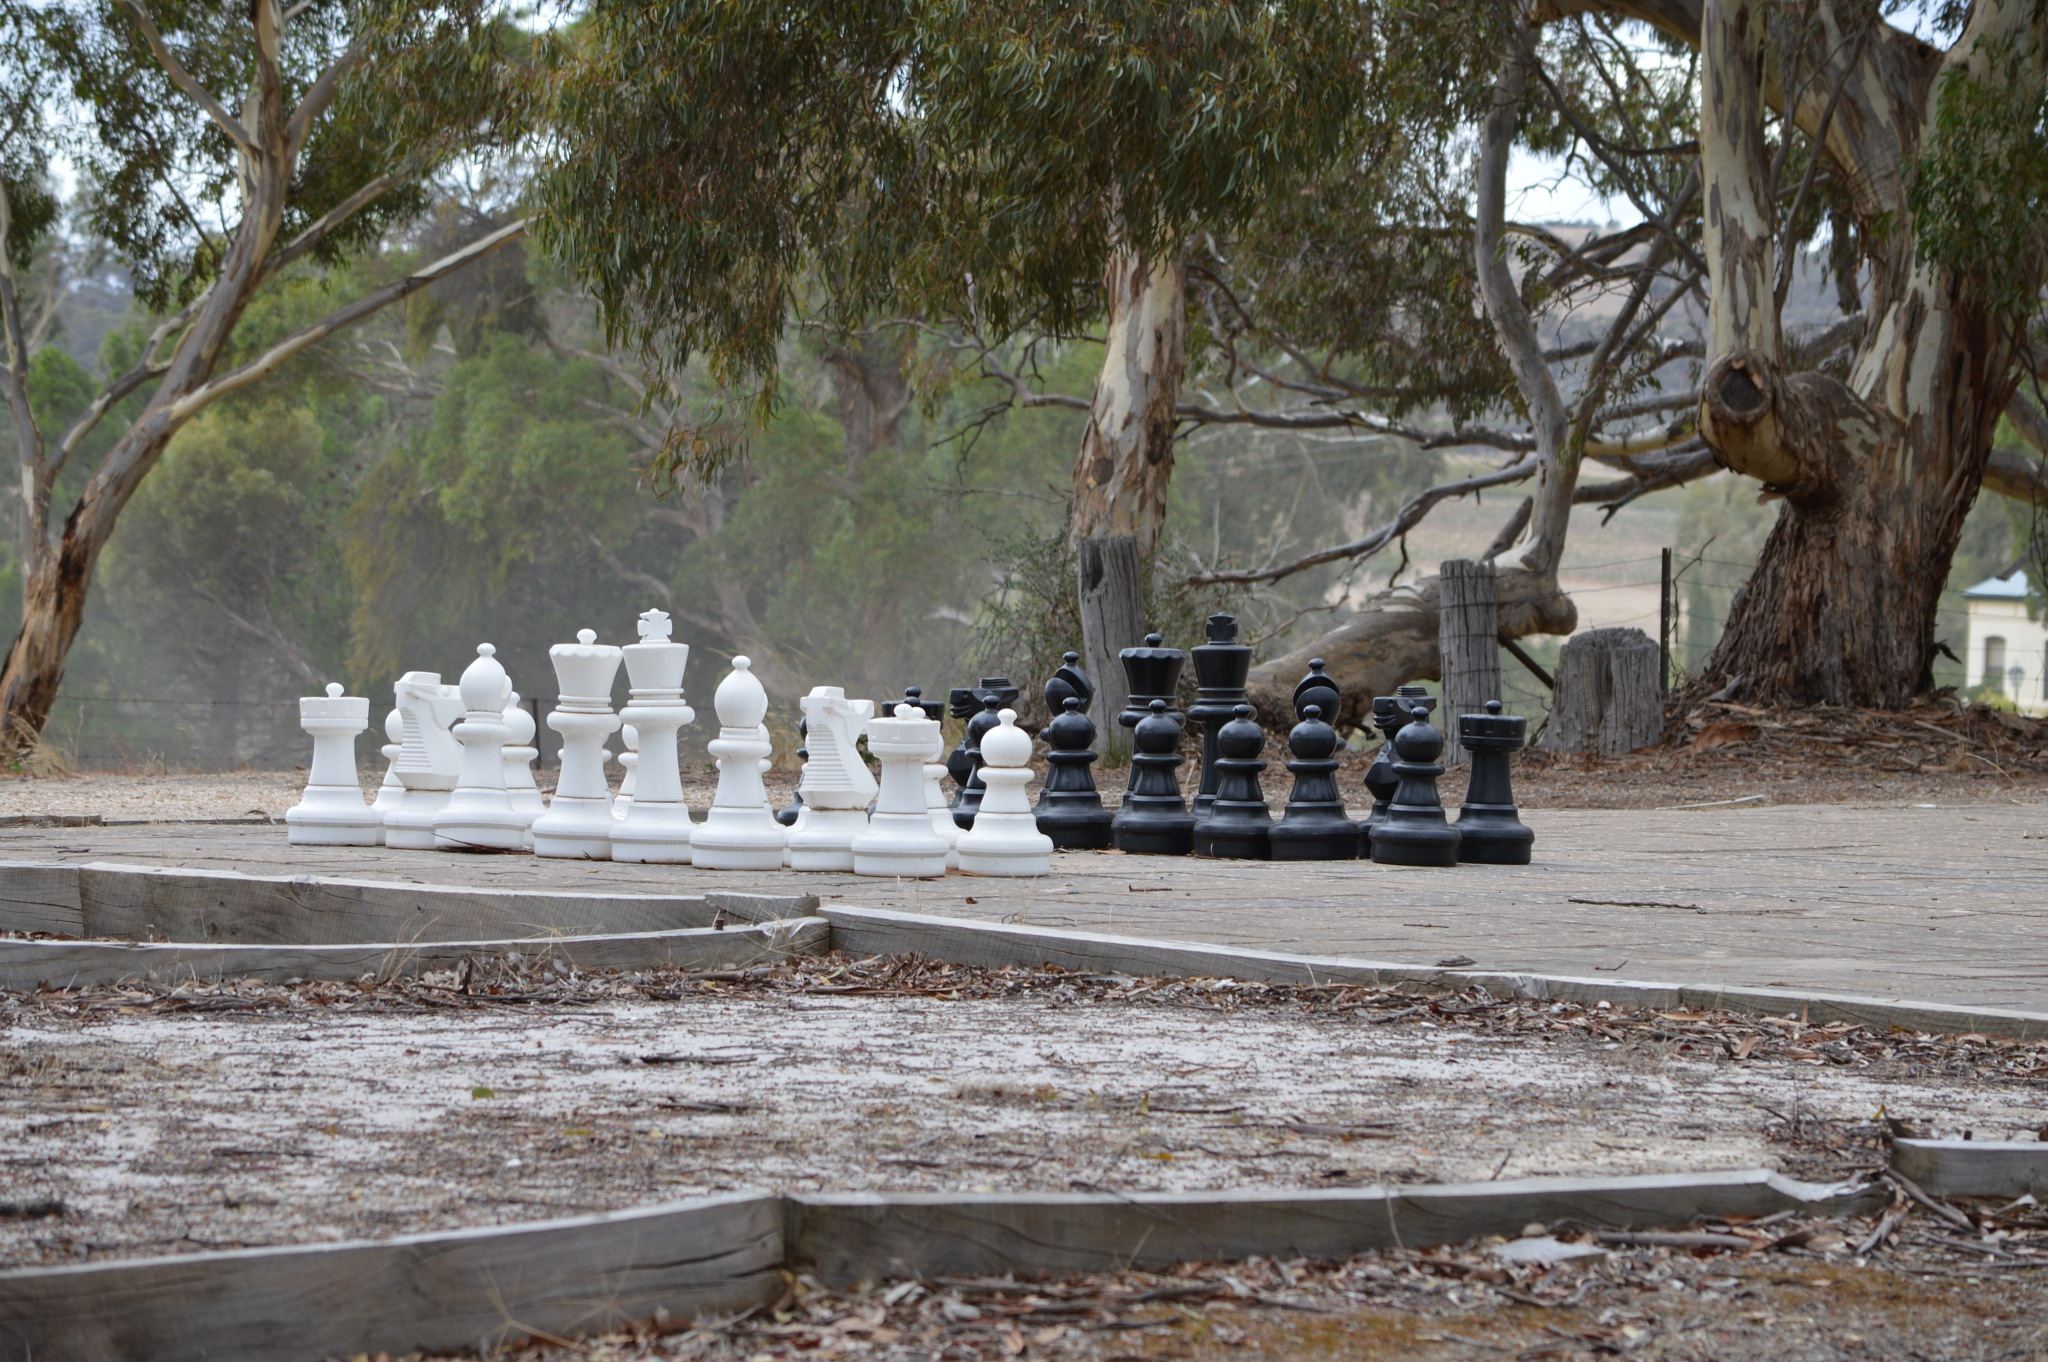 Chess in the Bush by Kev Peirce